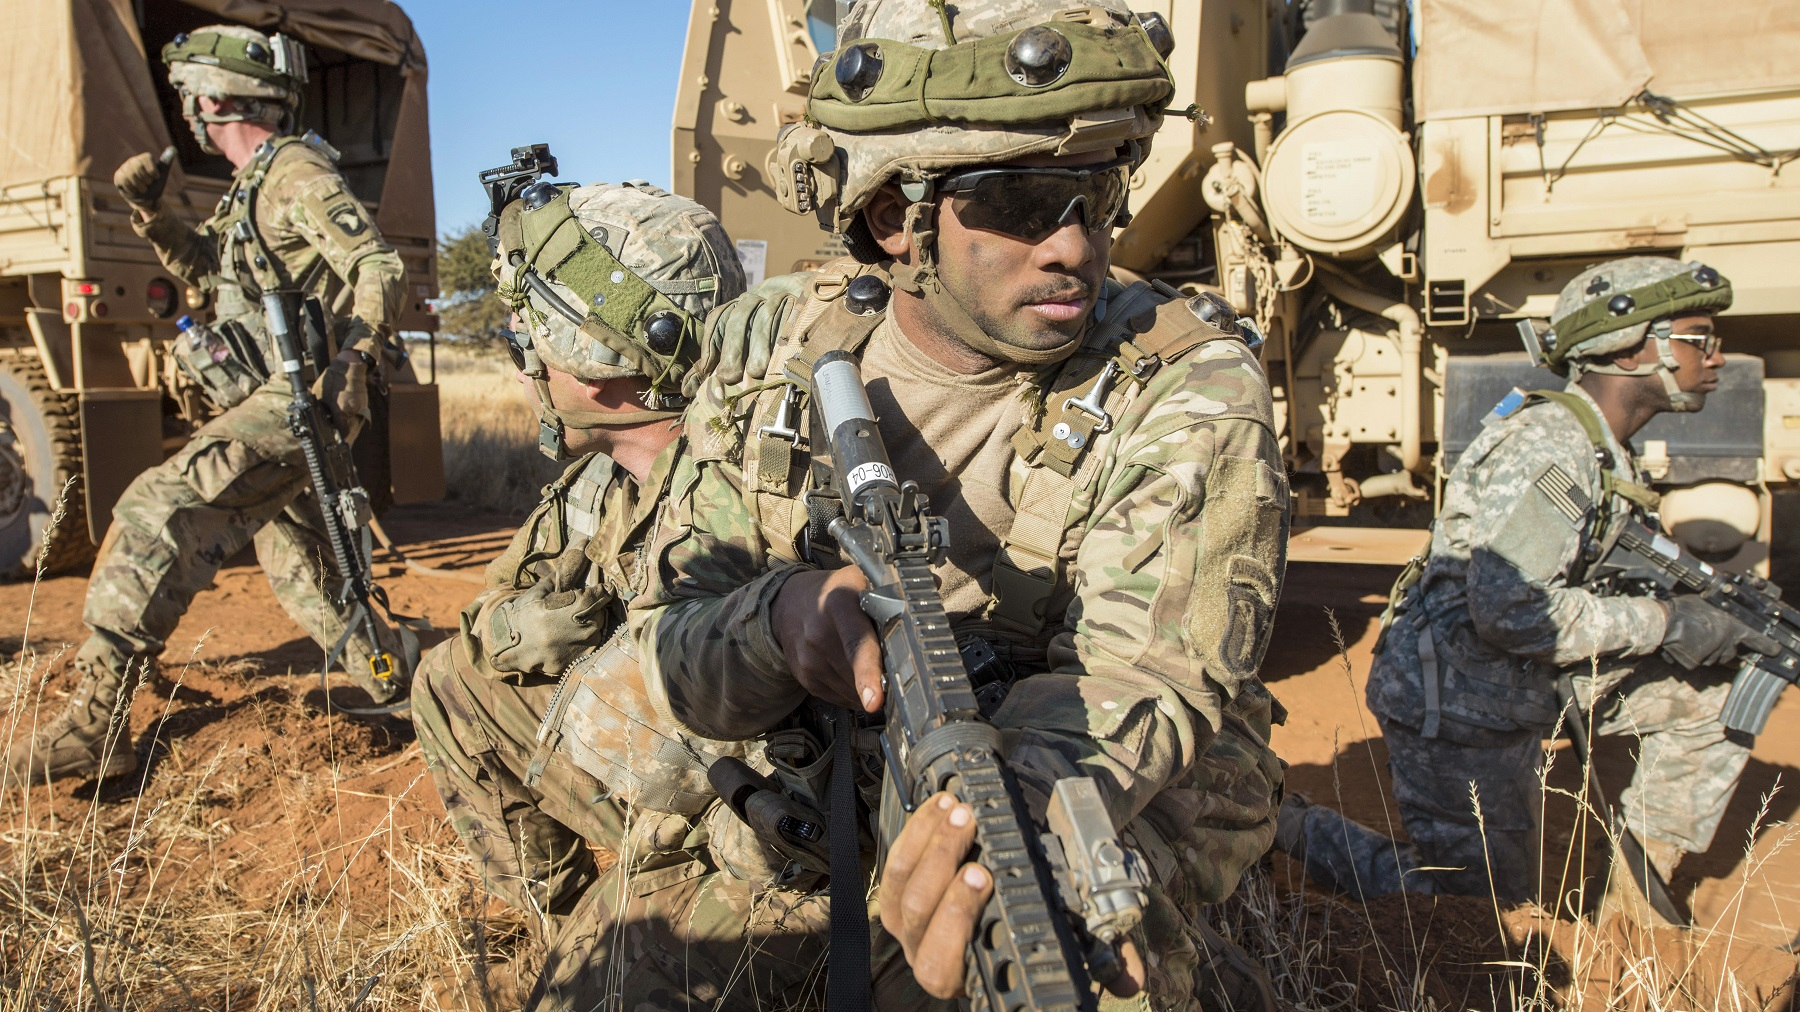 Tom kennedy us army claims service - Us Army Africa Turns Focus To Lake Chad Basin Increases Exercises To Deter Emerging Extremist